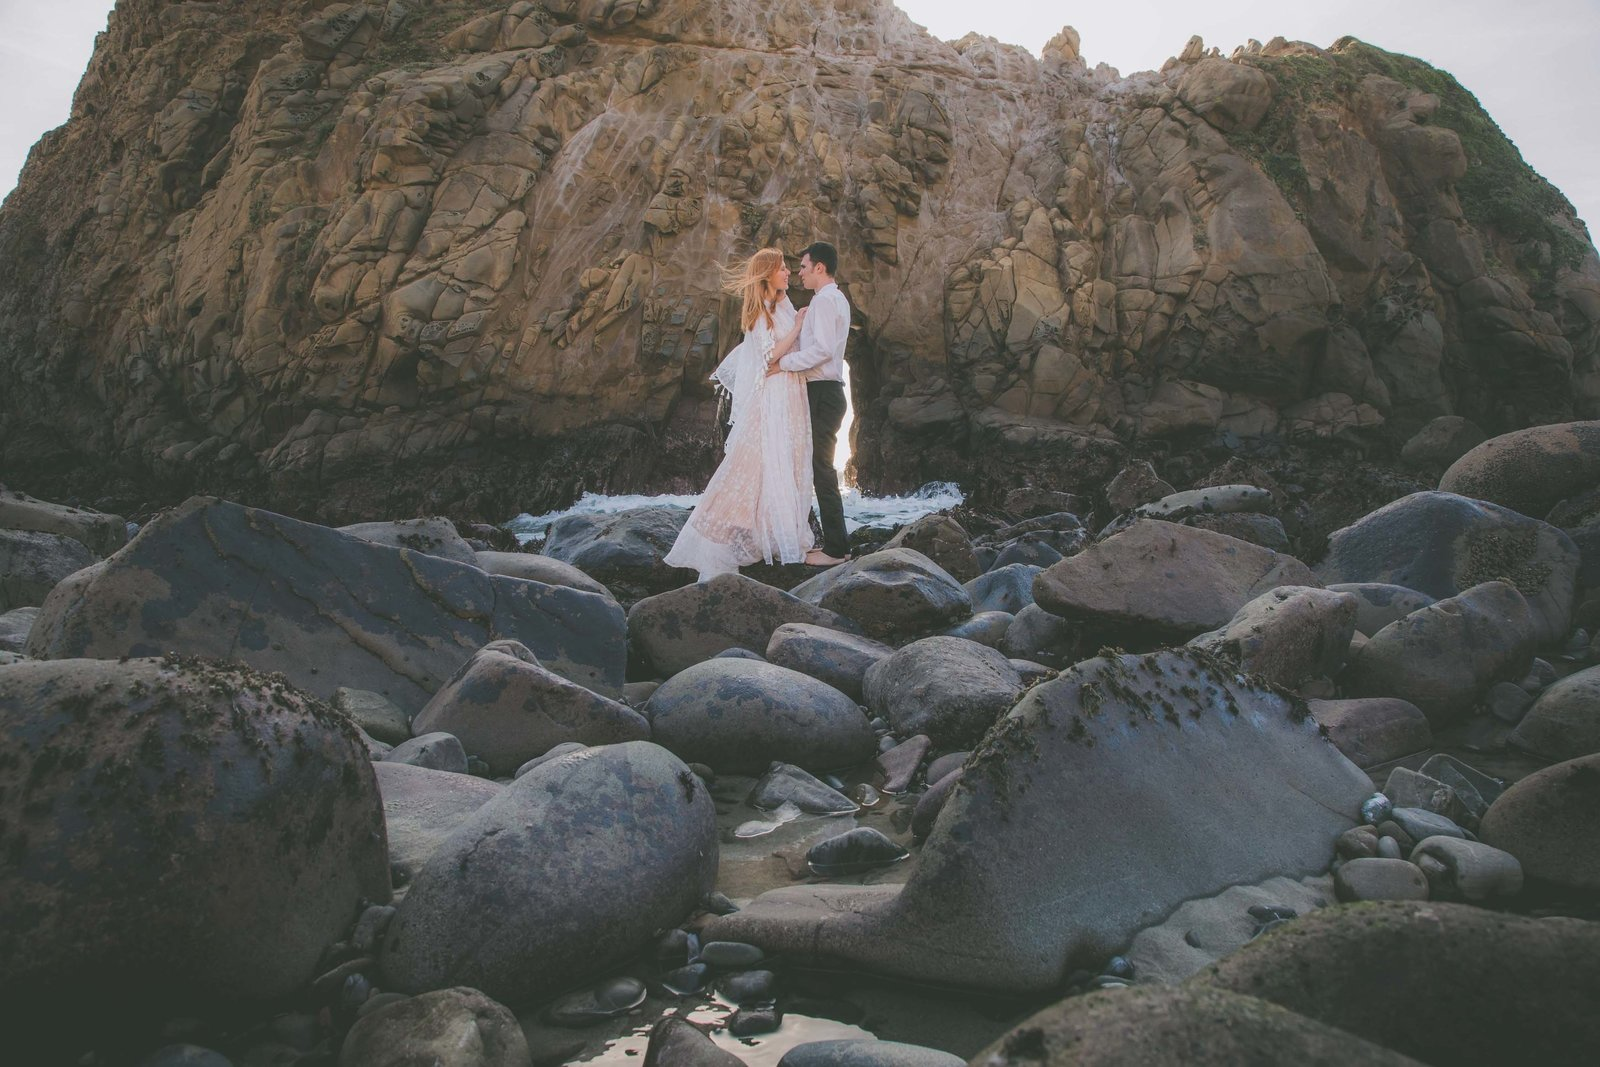 Pfeiffer beach makes a gorgeous background for newlywed photos.